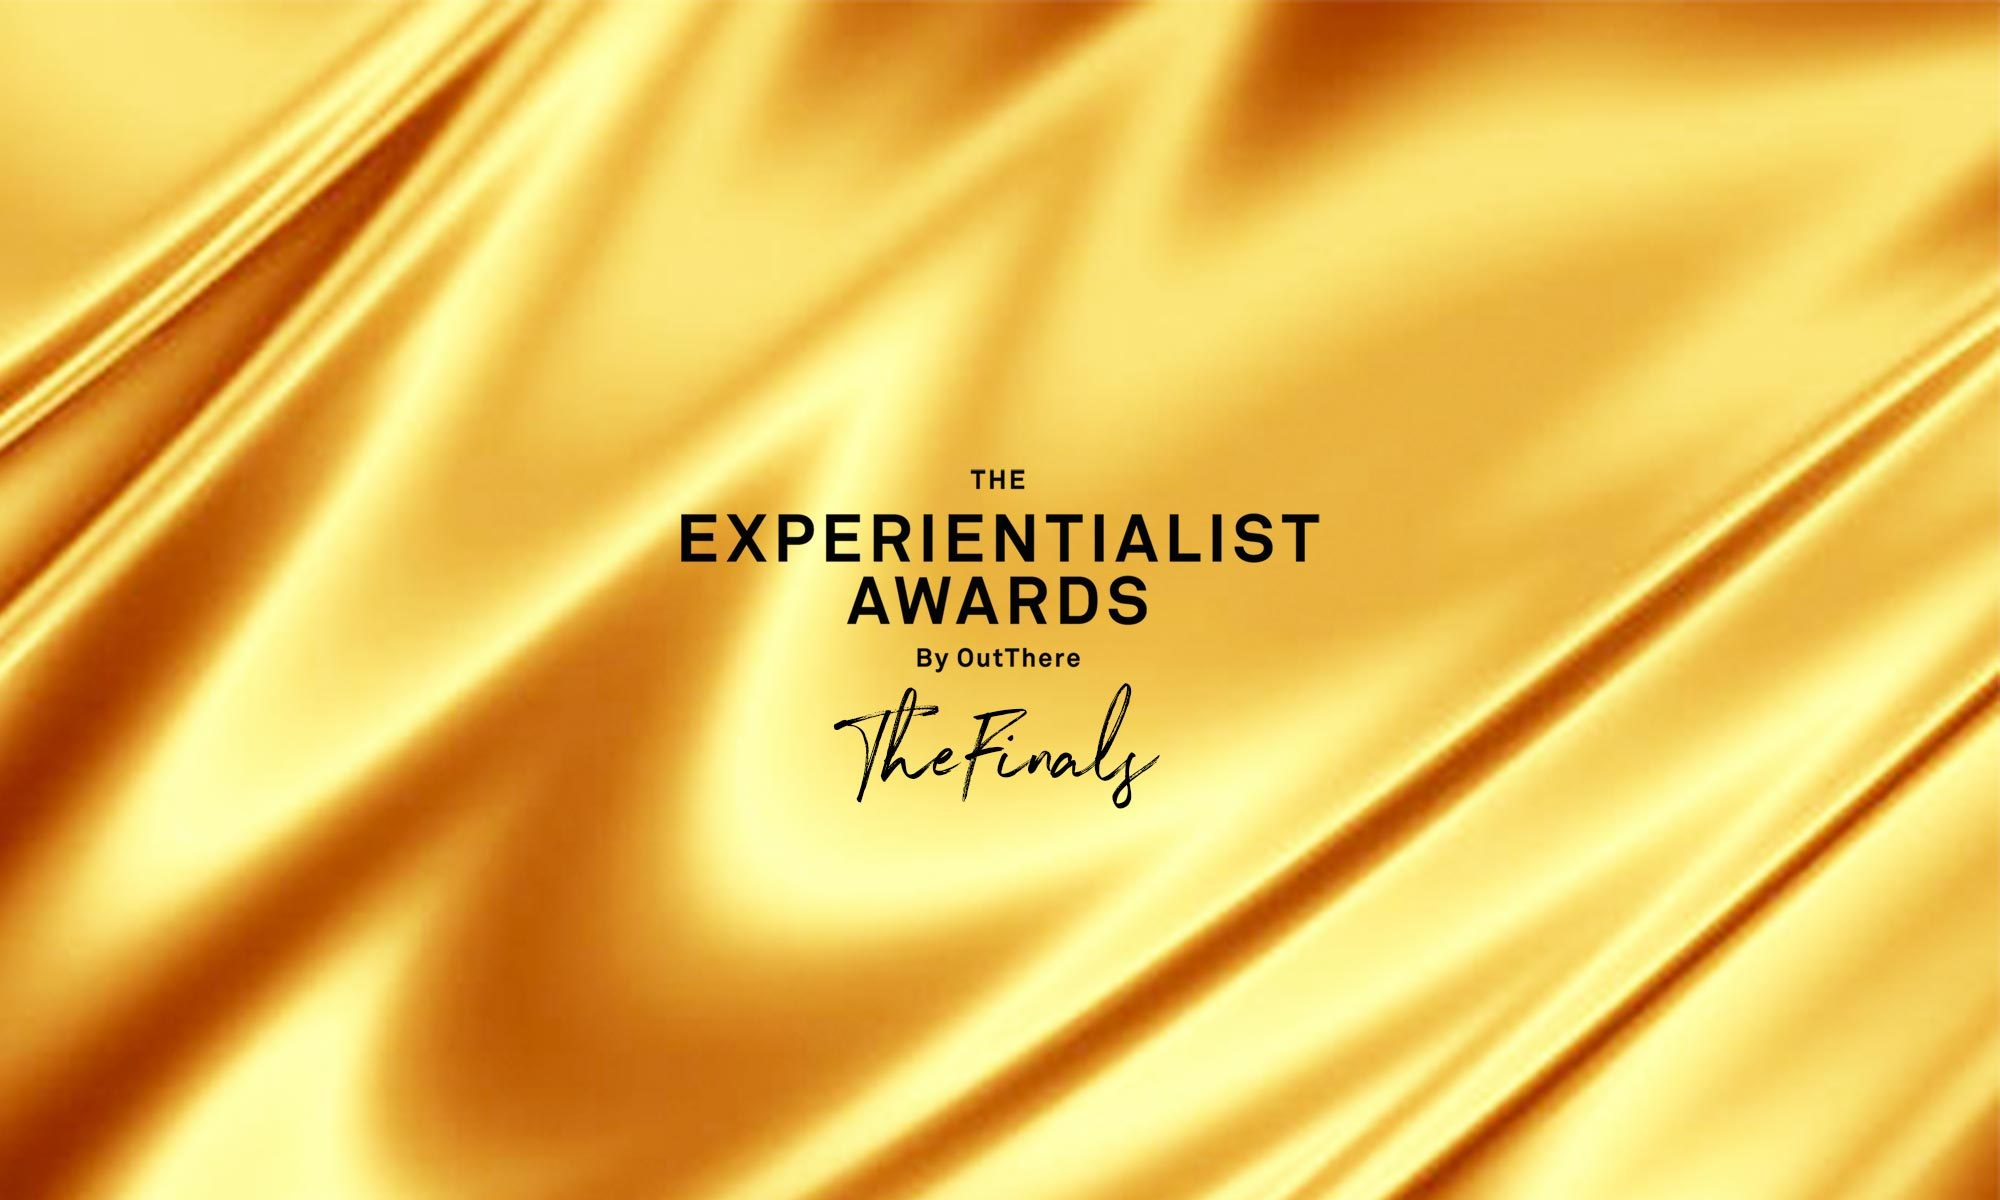 The Experientialist Awards by OutThere